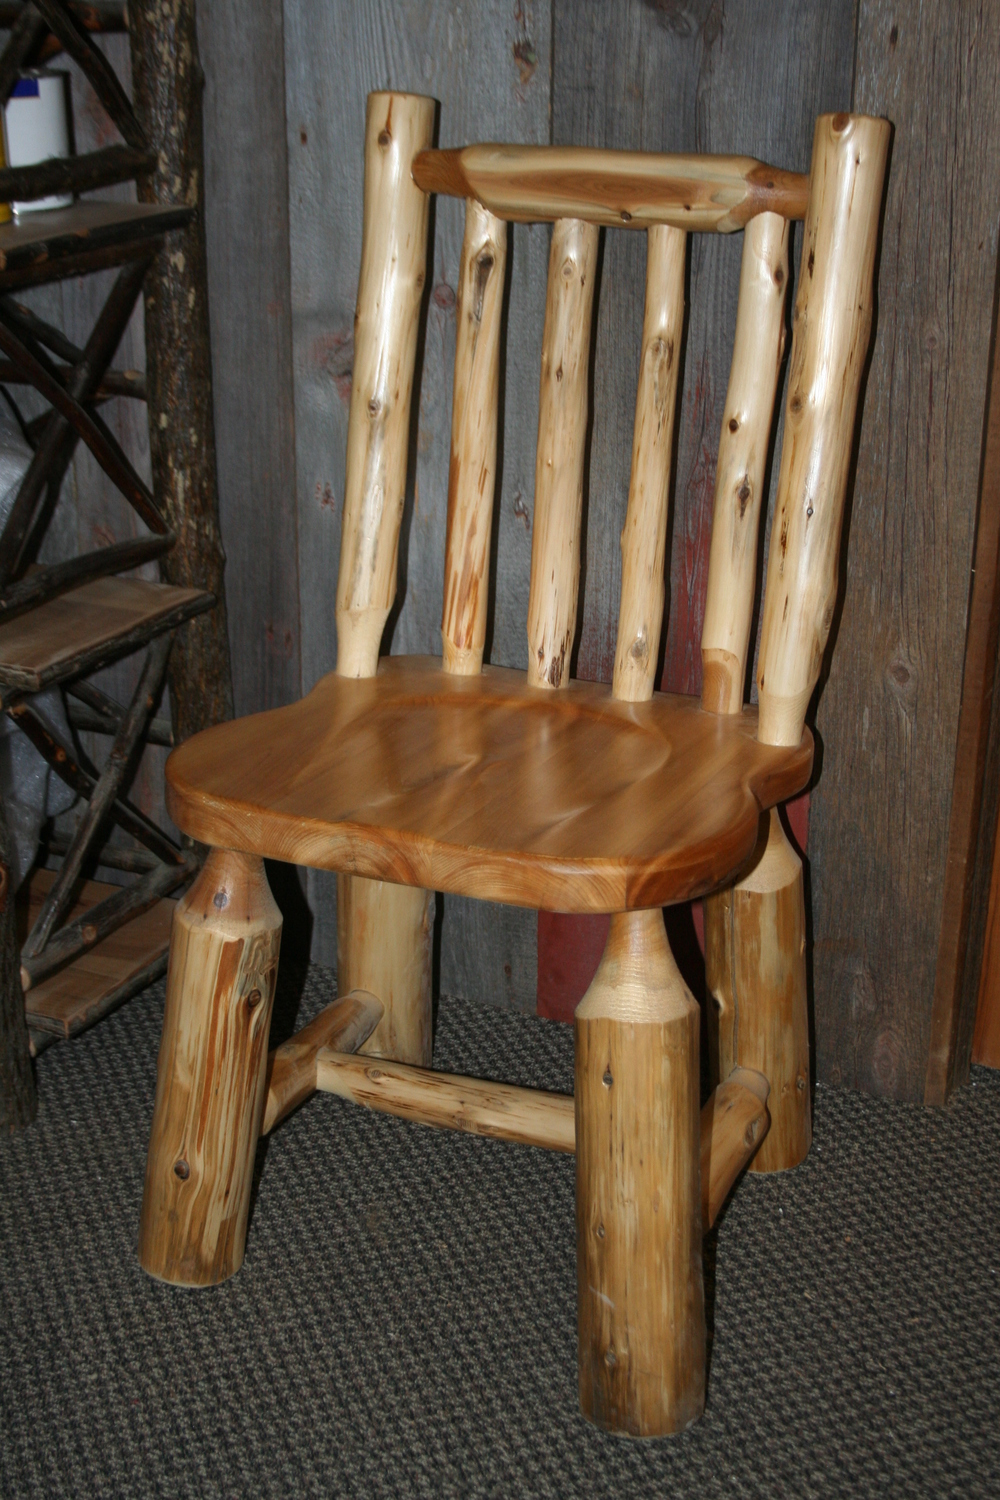 Cedar-Log-Chair-Side24 8-30-2011 3-12-30 AM 1819x3173.jpg